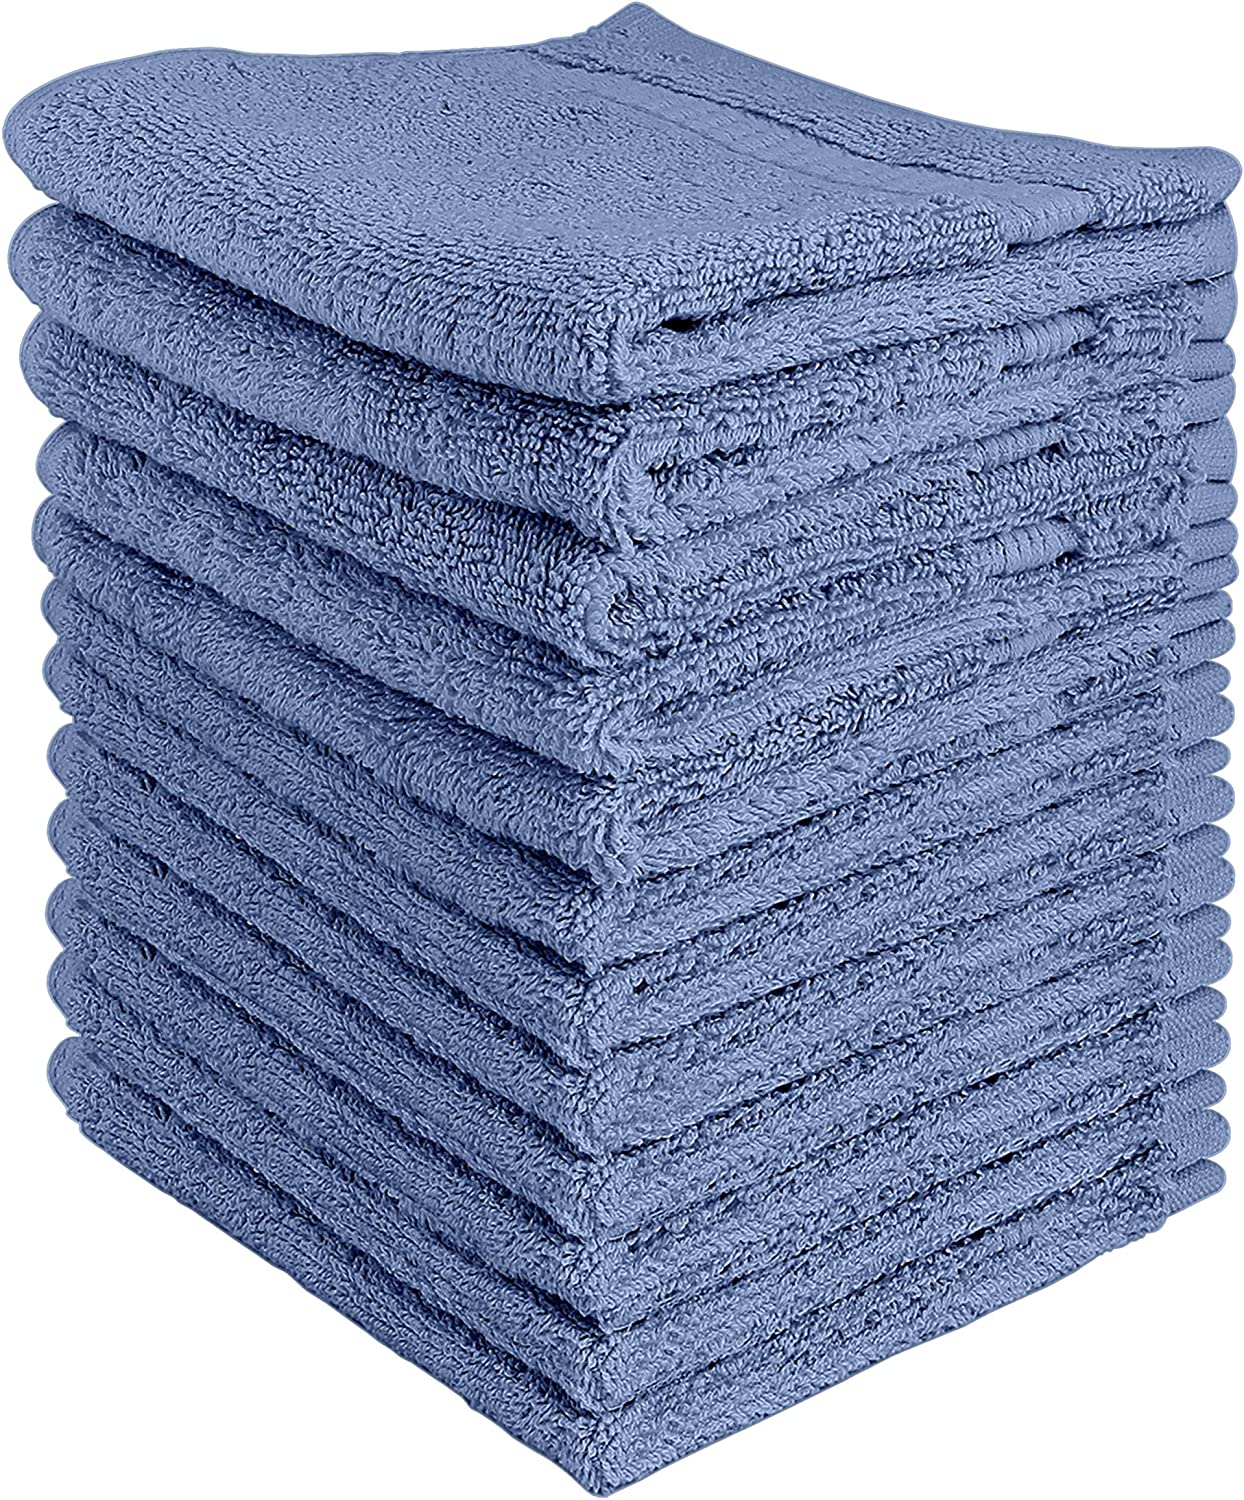 Utopia Towels Don't miss the campaign Premium Fingertip Towel x Elect Factory outlet 12 Set Inches